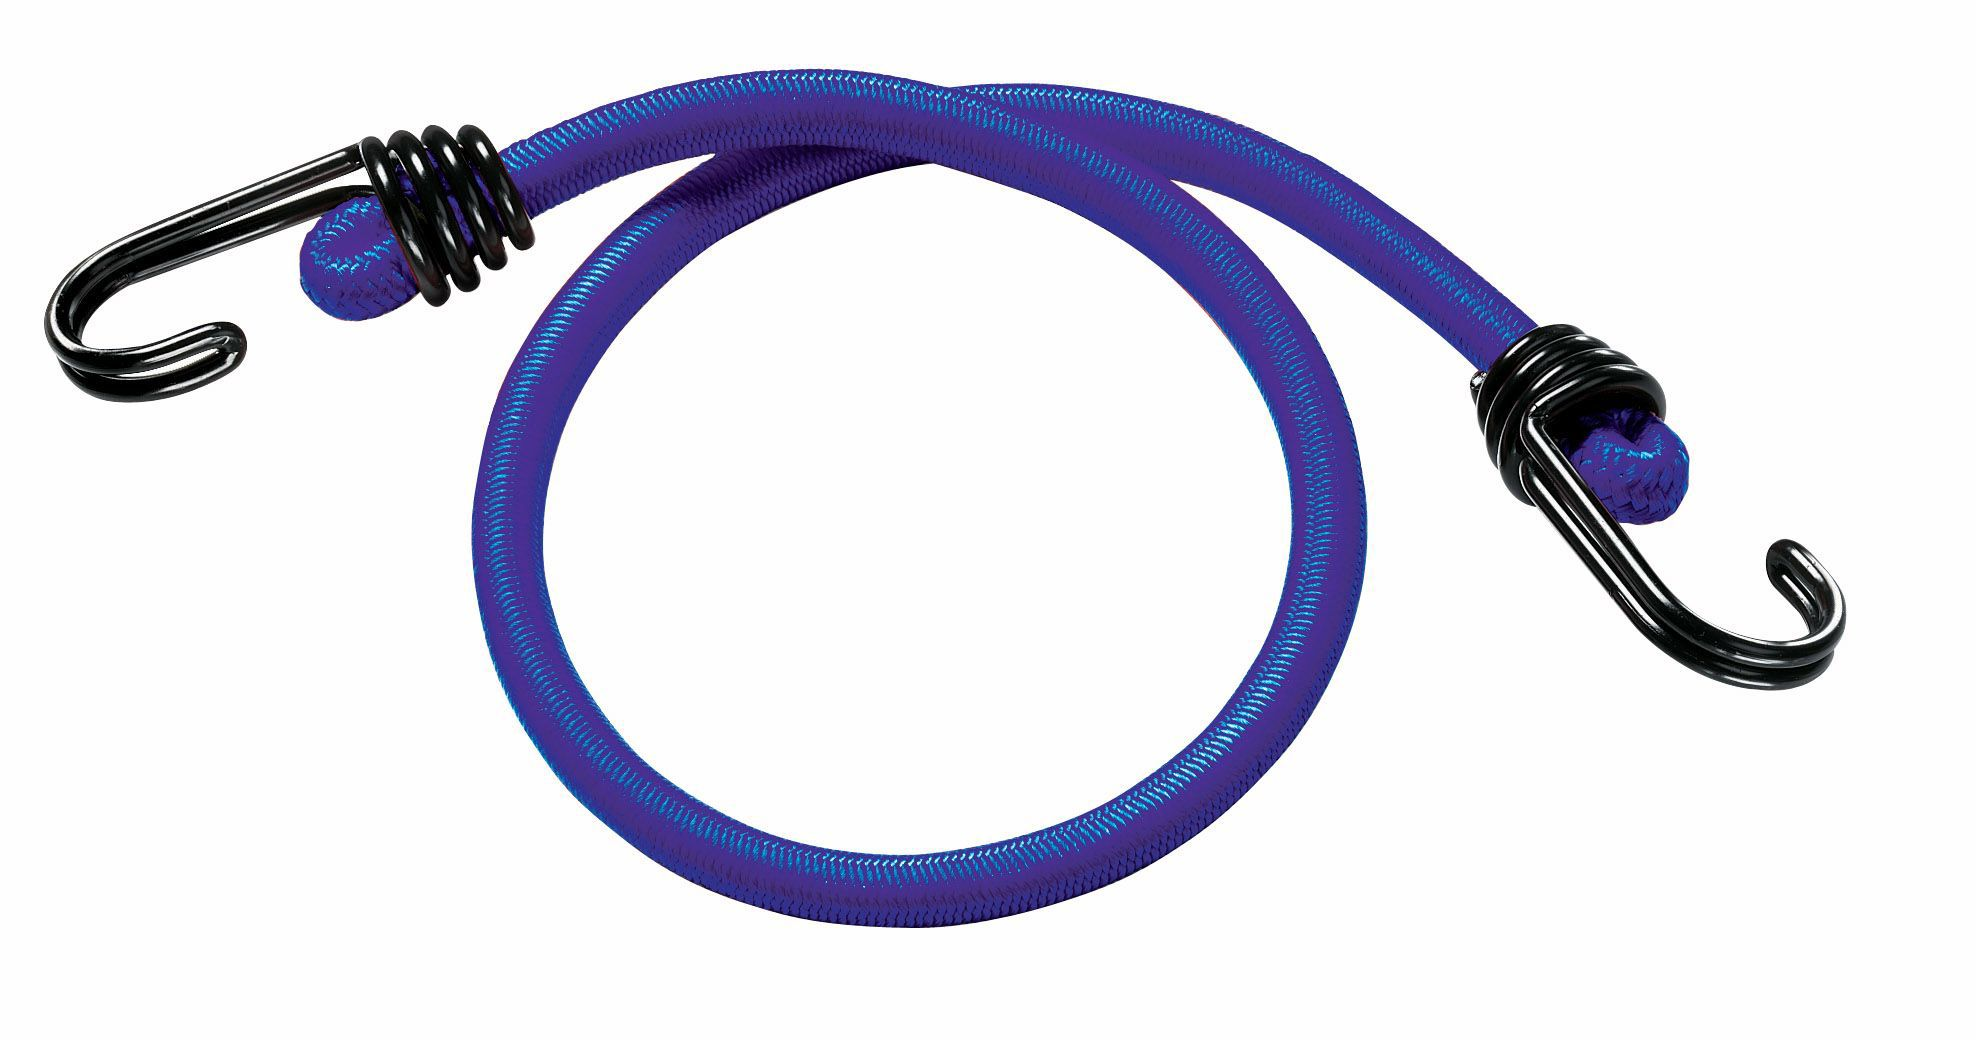 bungee cord chair diy 24 hour office chairs canada master lock blue l 1 2m pack of 2